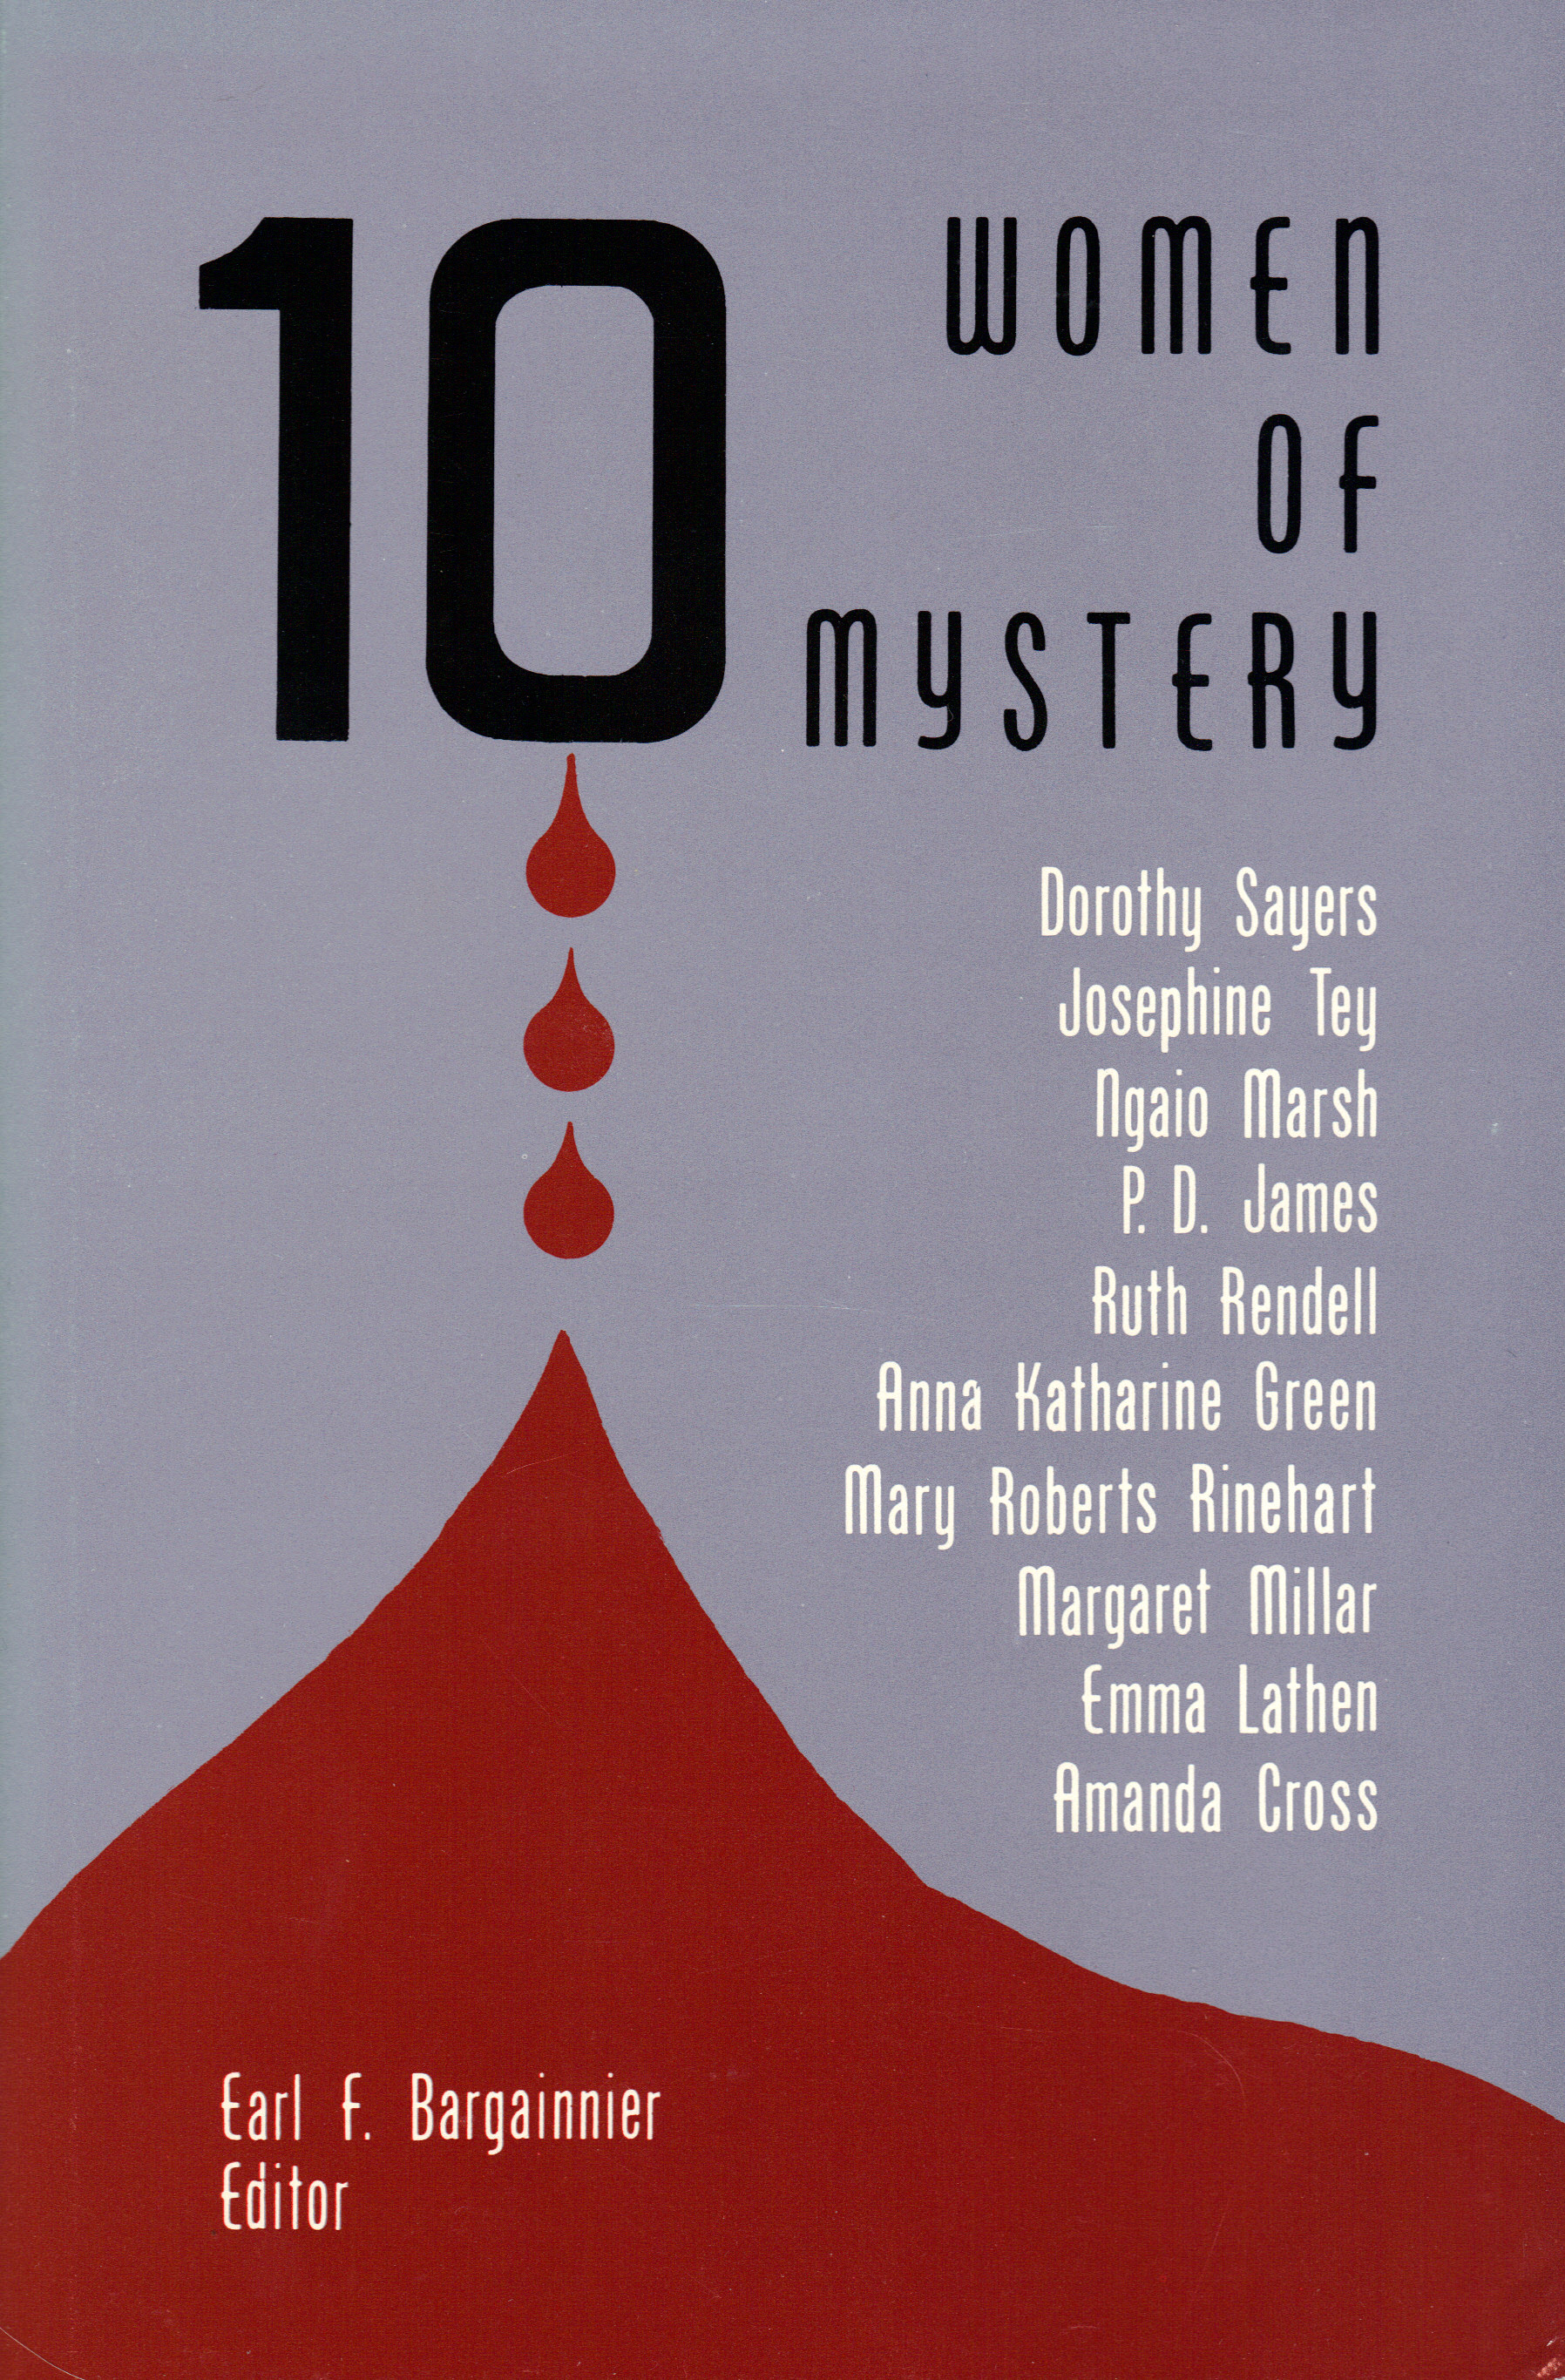 Image for 10 WOMEN OF MYSTERY